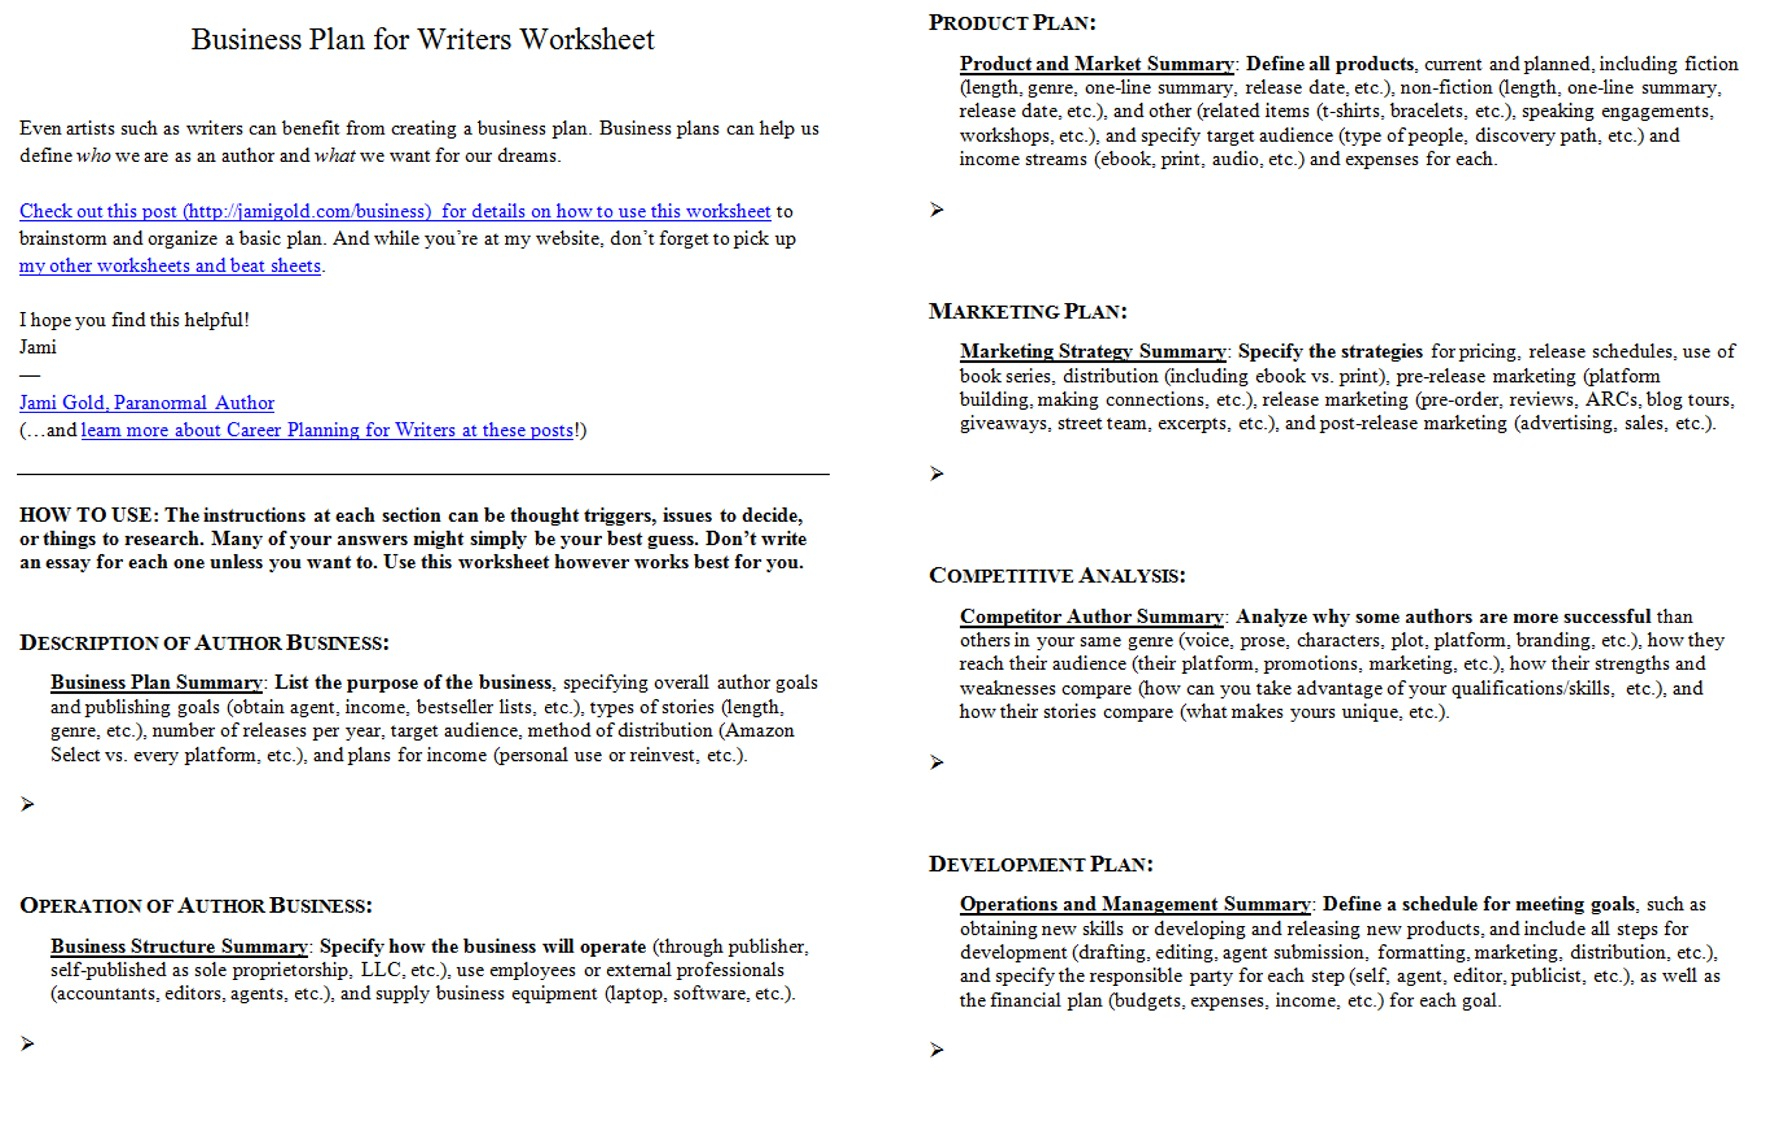 Screen shot of both pages of the Business Plan for Writers Worksheet